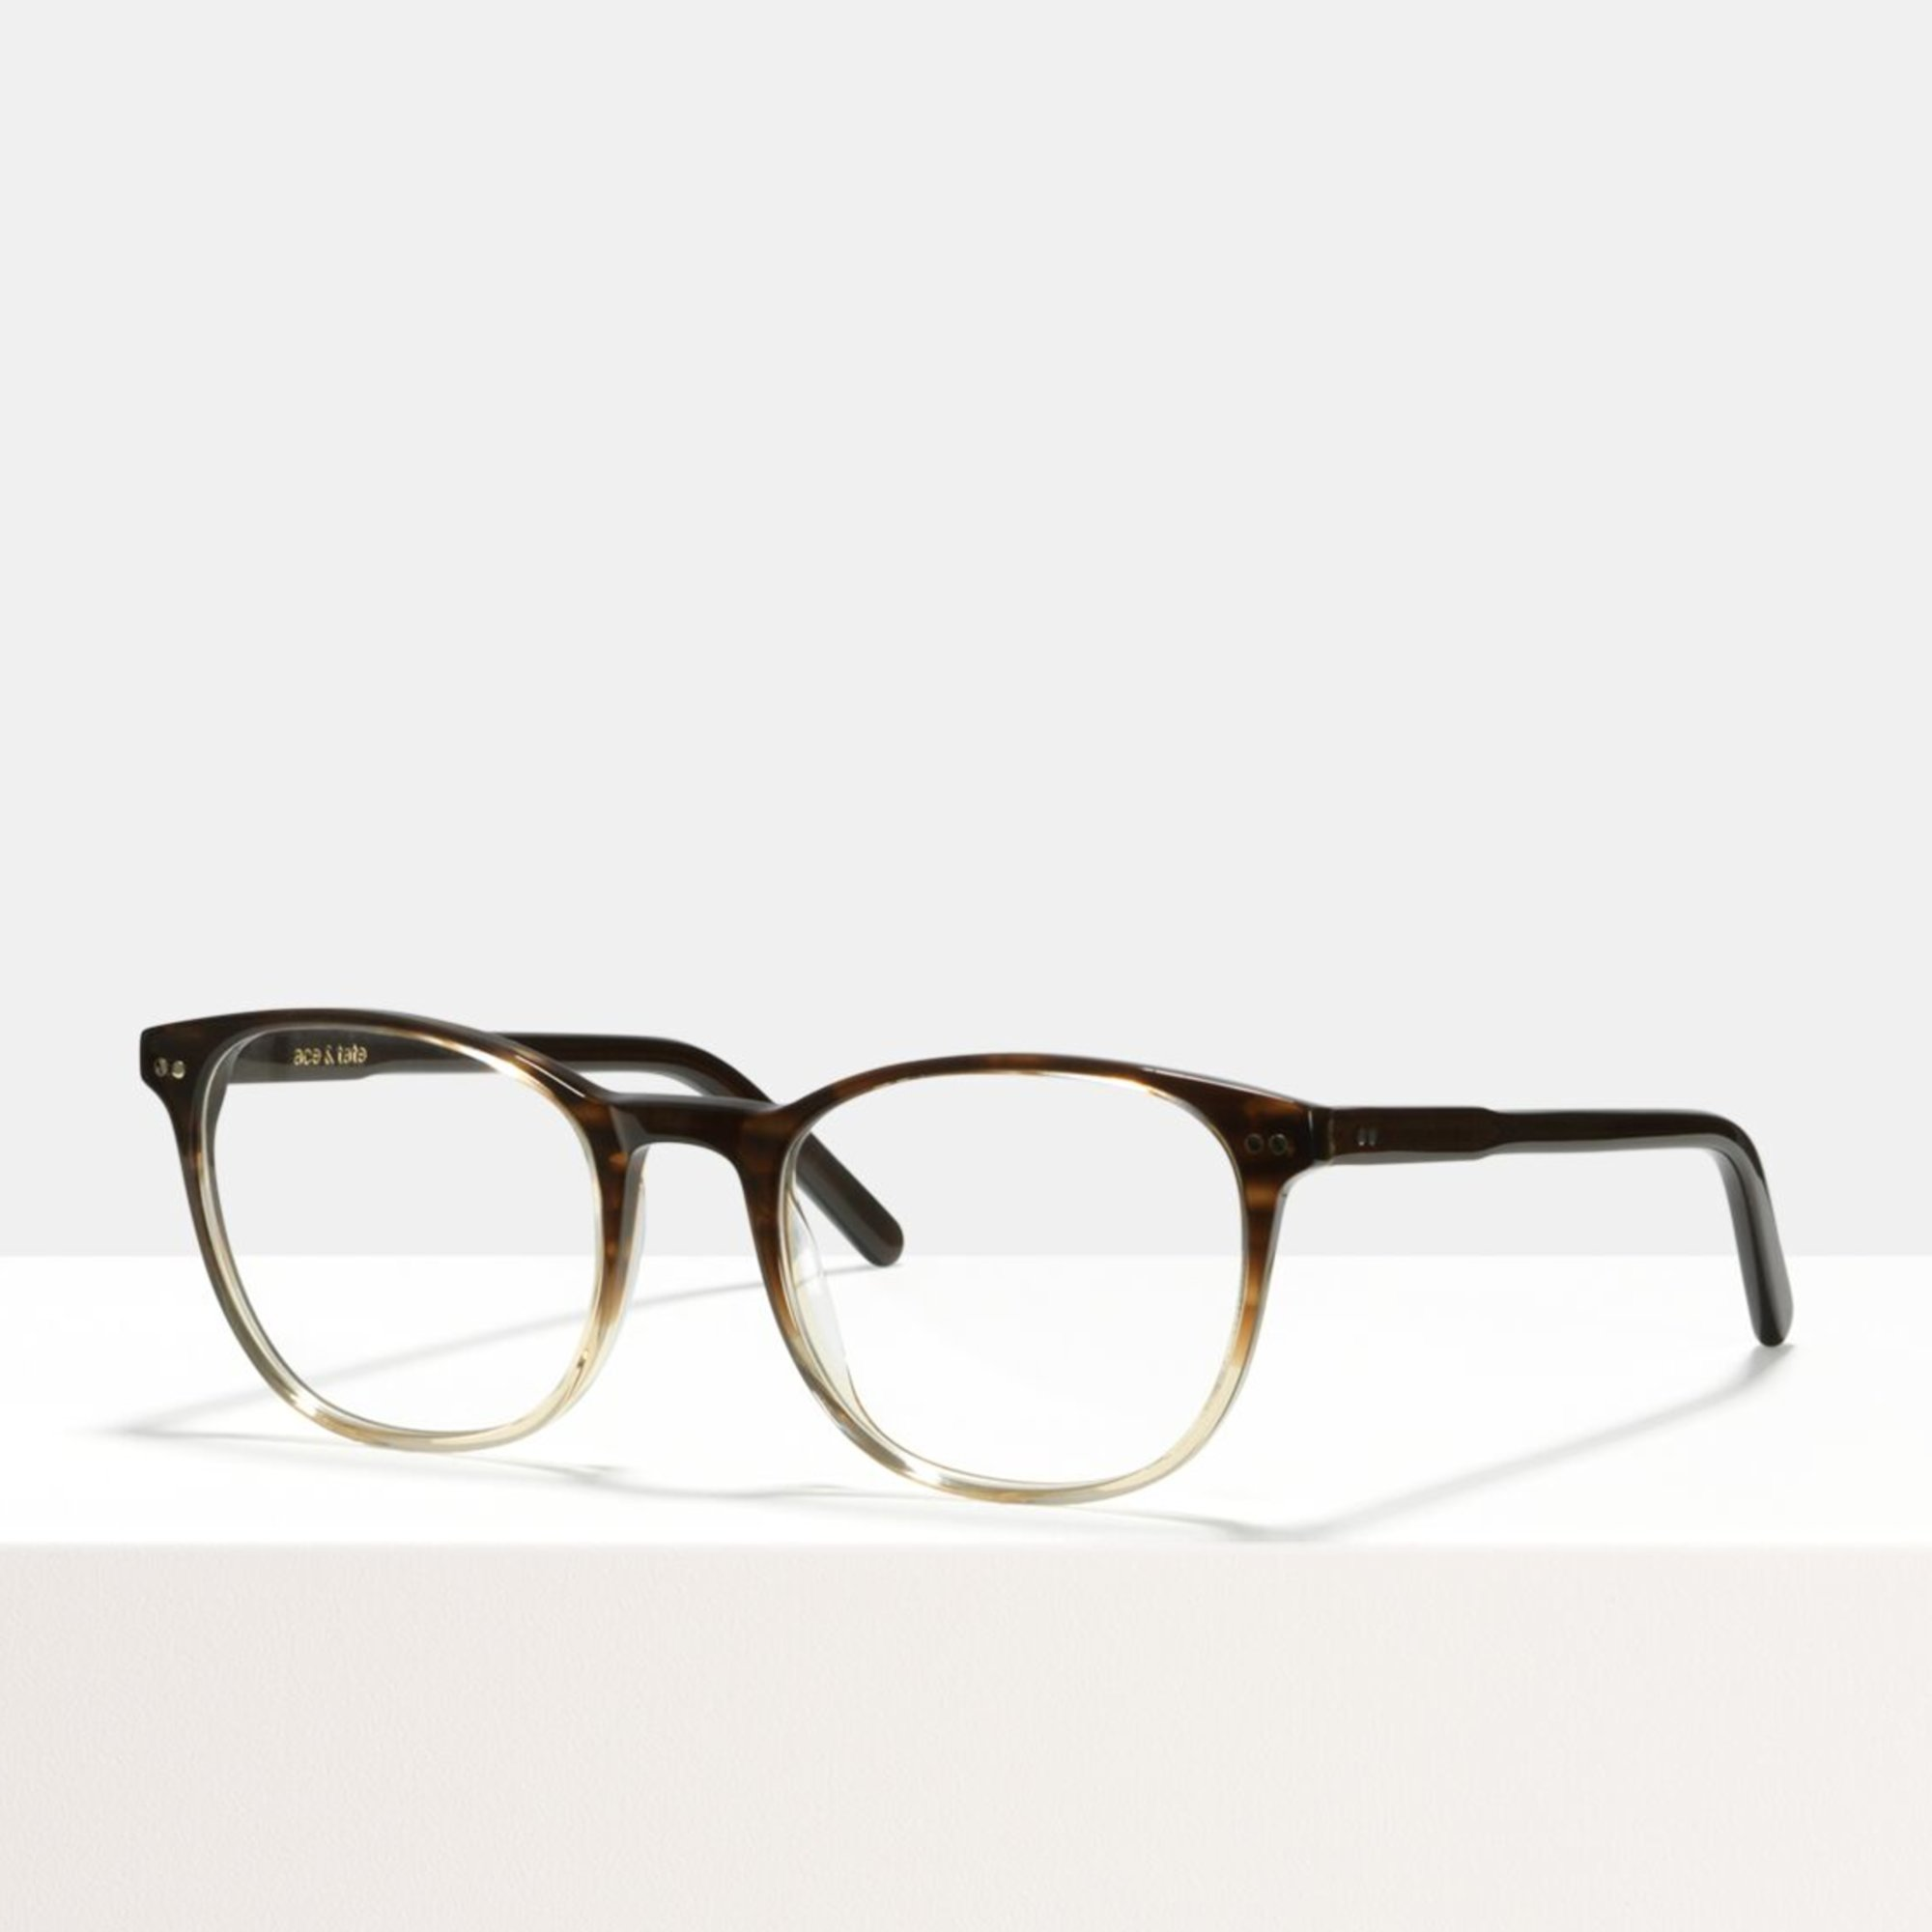 Ace & Tate Glasses | square acetate in Beige, Brown, Gold, Grey